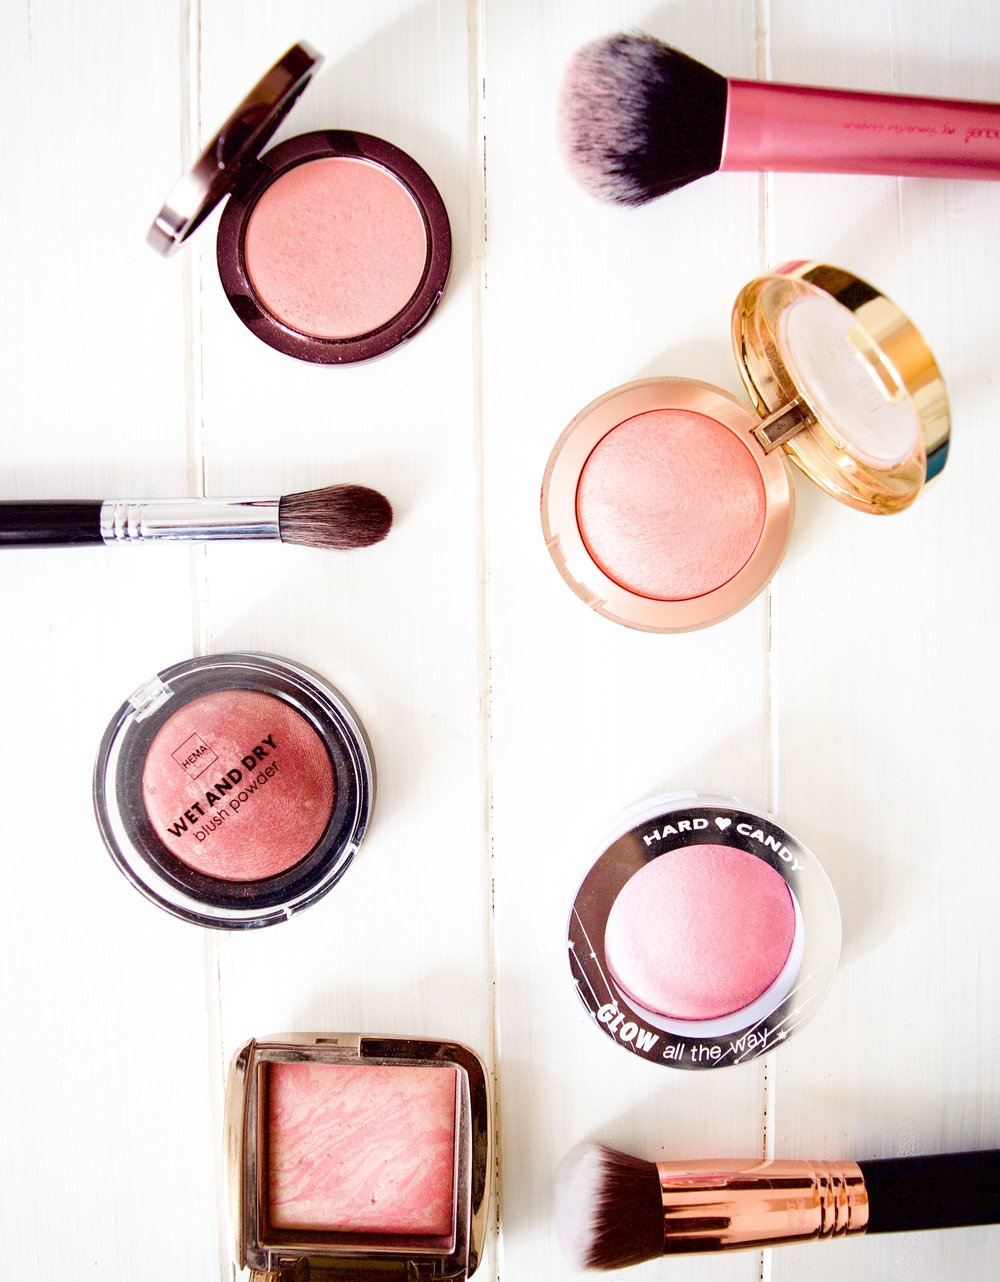 shimmer blush | glowing blush | peach blush | blush